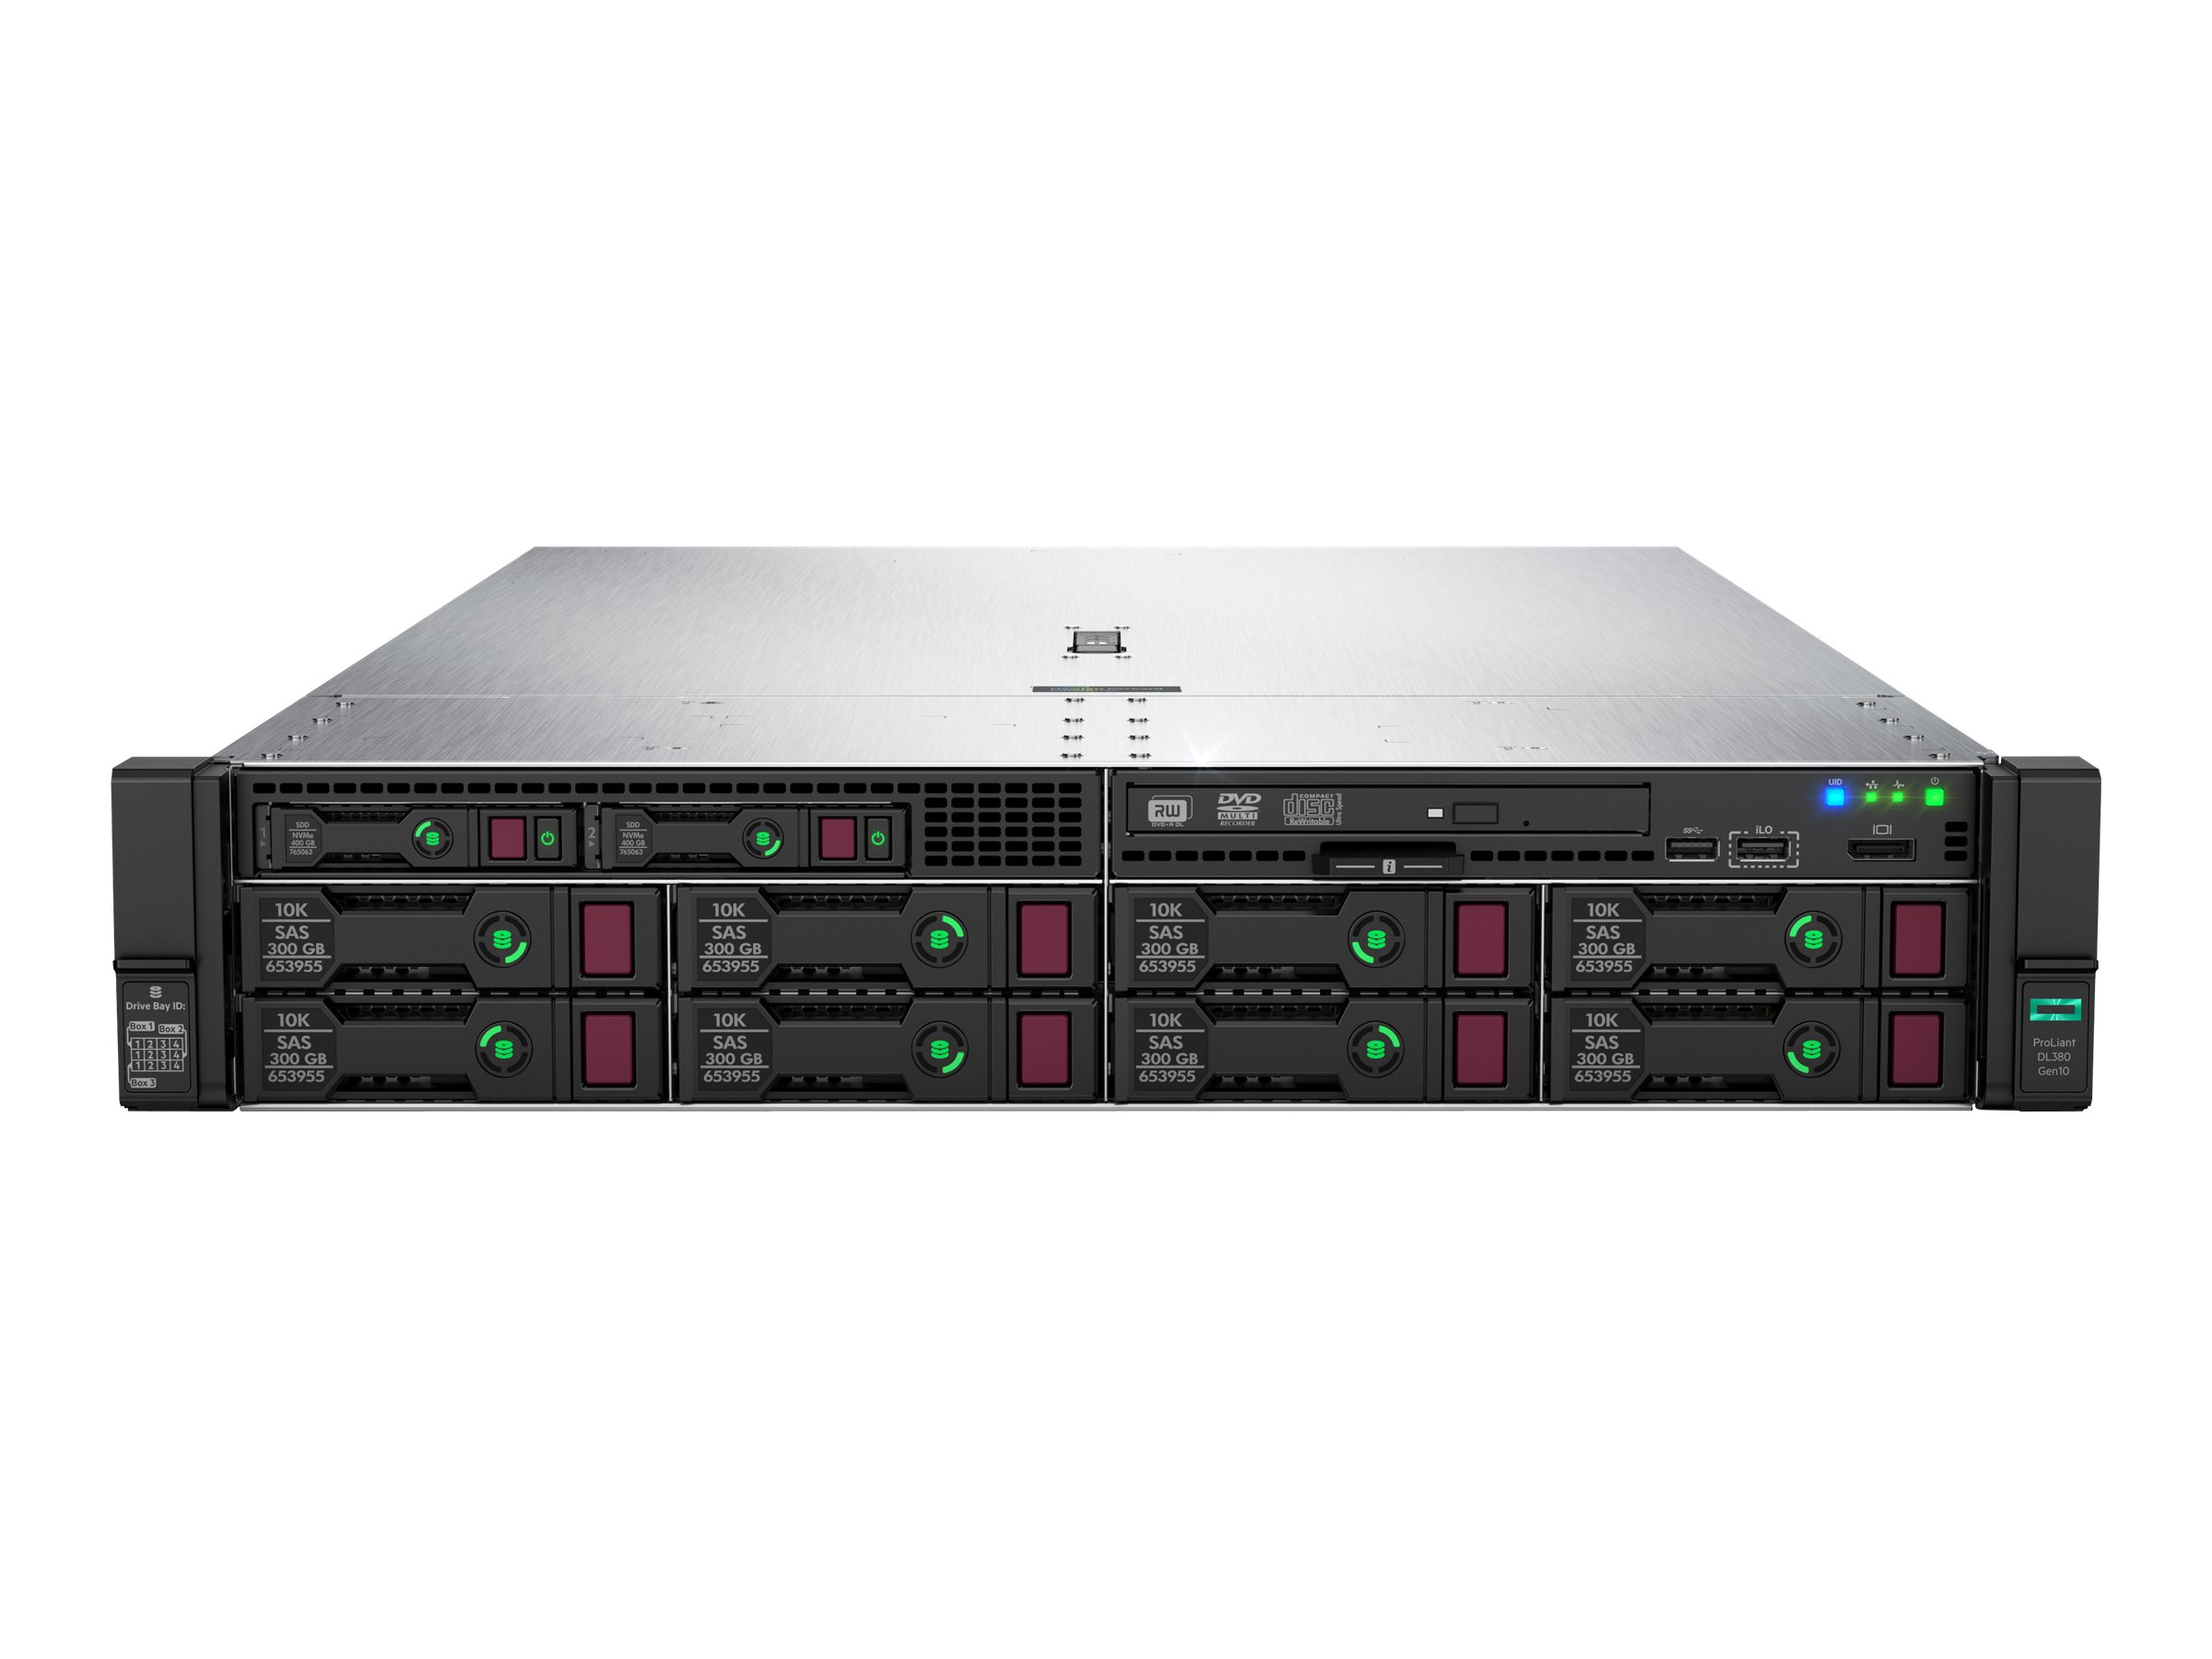 "HP Enterprise ProLiant DL380 Gen10 - Server - Rack-Montage - 2U - zweiweg - 1 x Xeon Gold 5222 / 3.8 GHz - RAM 32 GB - SAS - Hot-Swap 6.4 cm (2.5"")"